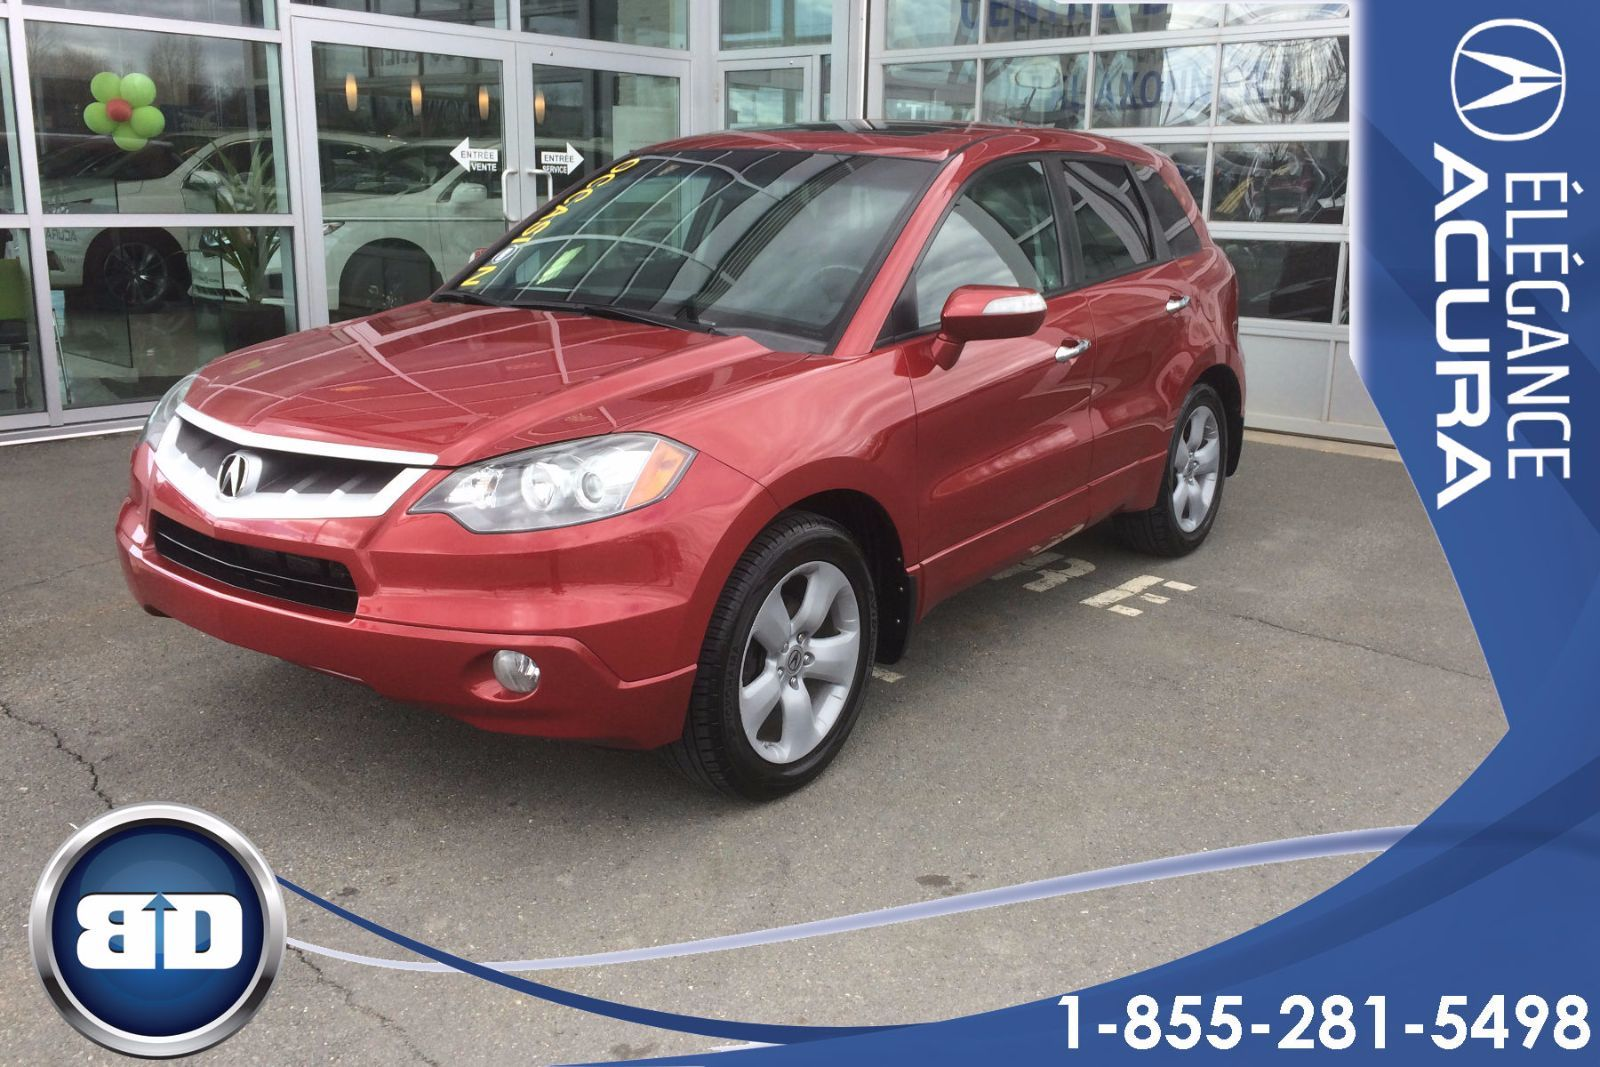 used 2007 acura rdx sh awd cuir toit in granby used inventory l gance acura in granby quebec. Black Bedroom Furniture Sets. Home Design Ideas